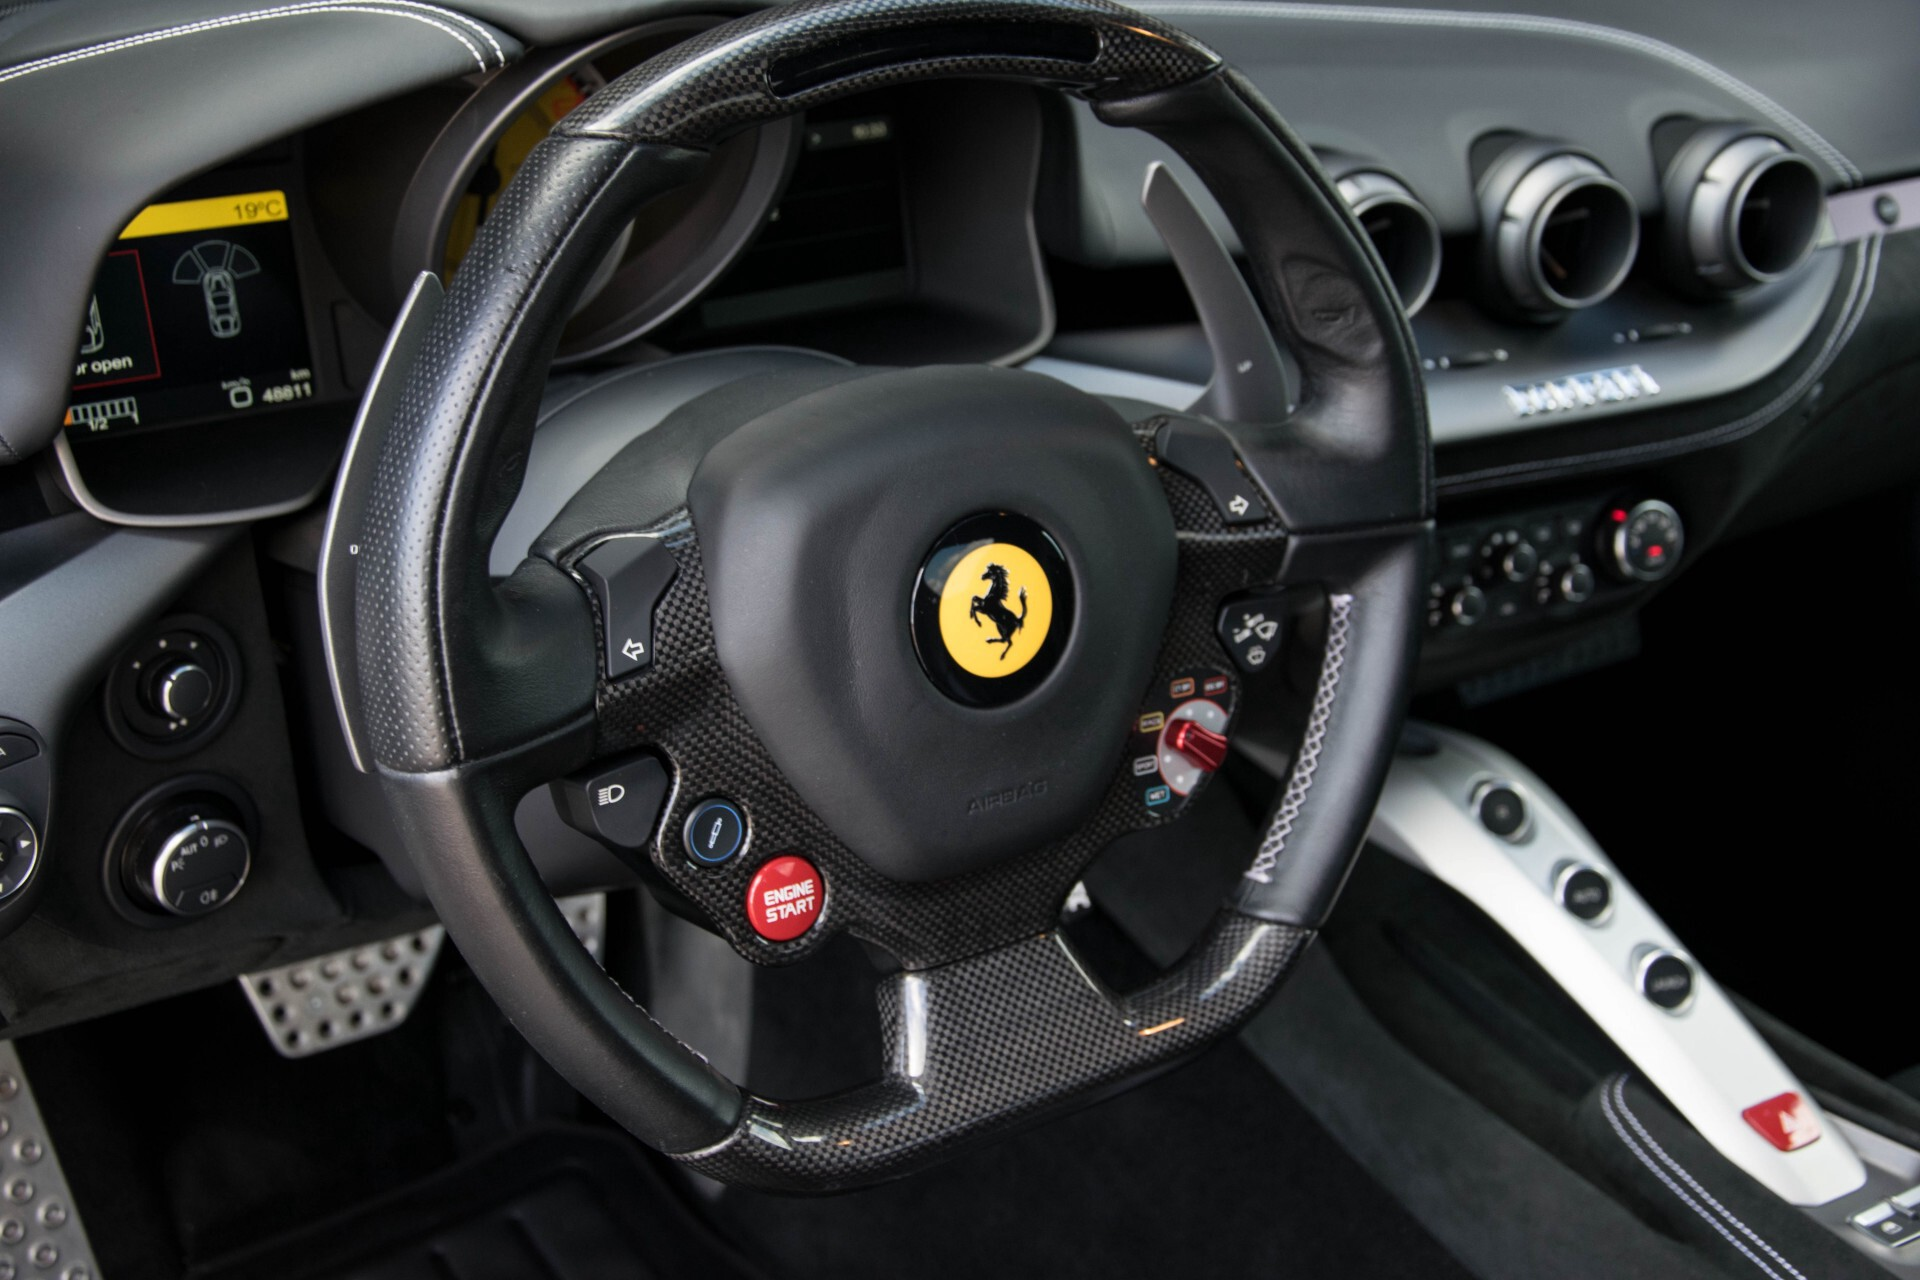 Ferrari F12 6.3 Berlinetta Capristo/Carbonseats/Led/Passenger Display Aut7 Foto 30